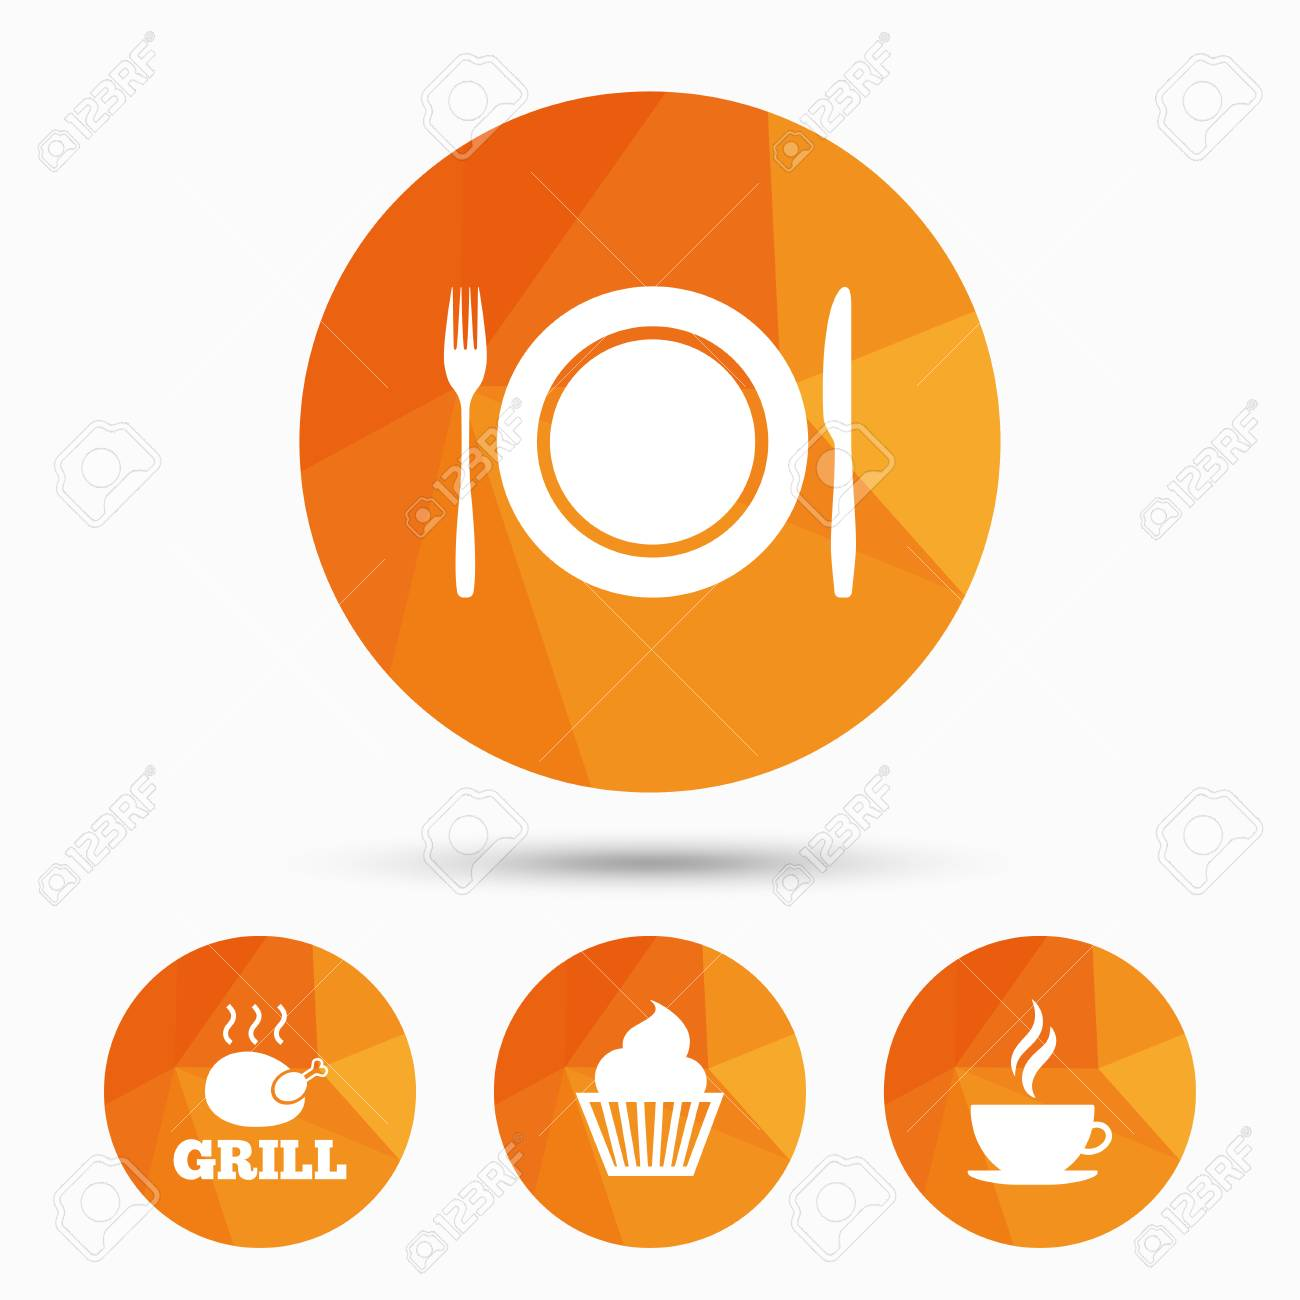 Food And Drink Icons Muffin Cupcake Symbol Plate Dish With Fork And Knife Sign Hot Coffee Cup Triangular Low Poly Buttons With Shadow Vector